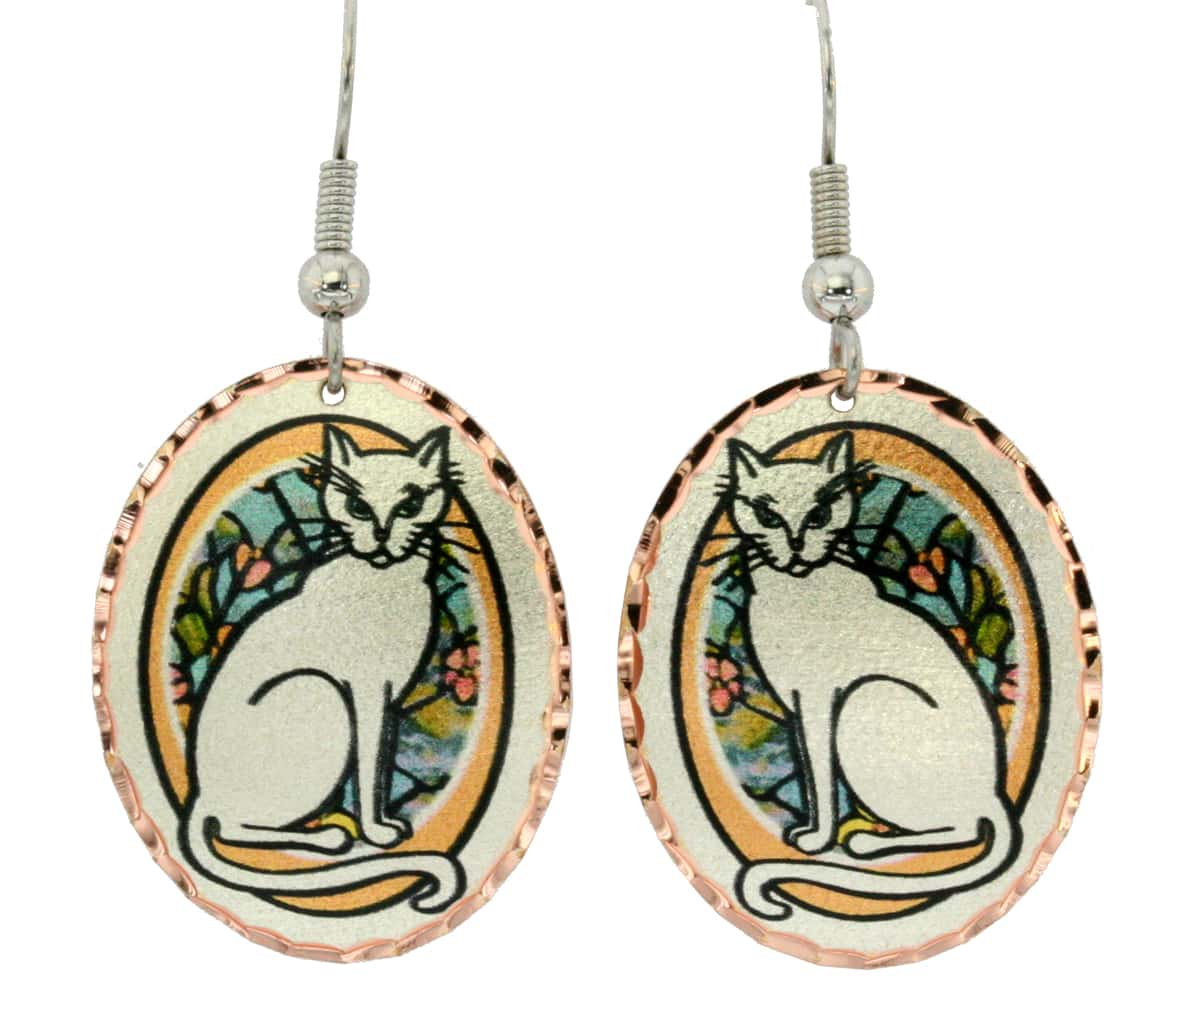 Oval cat earrings, accessorize your outfits with cat inspired unique jewelry